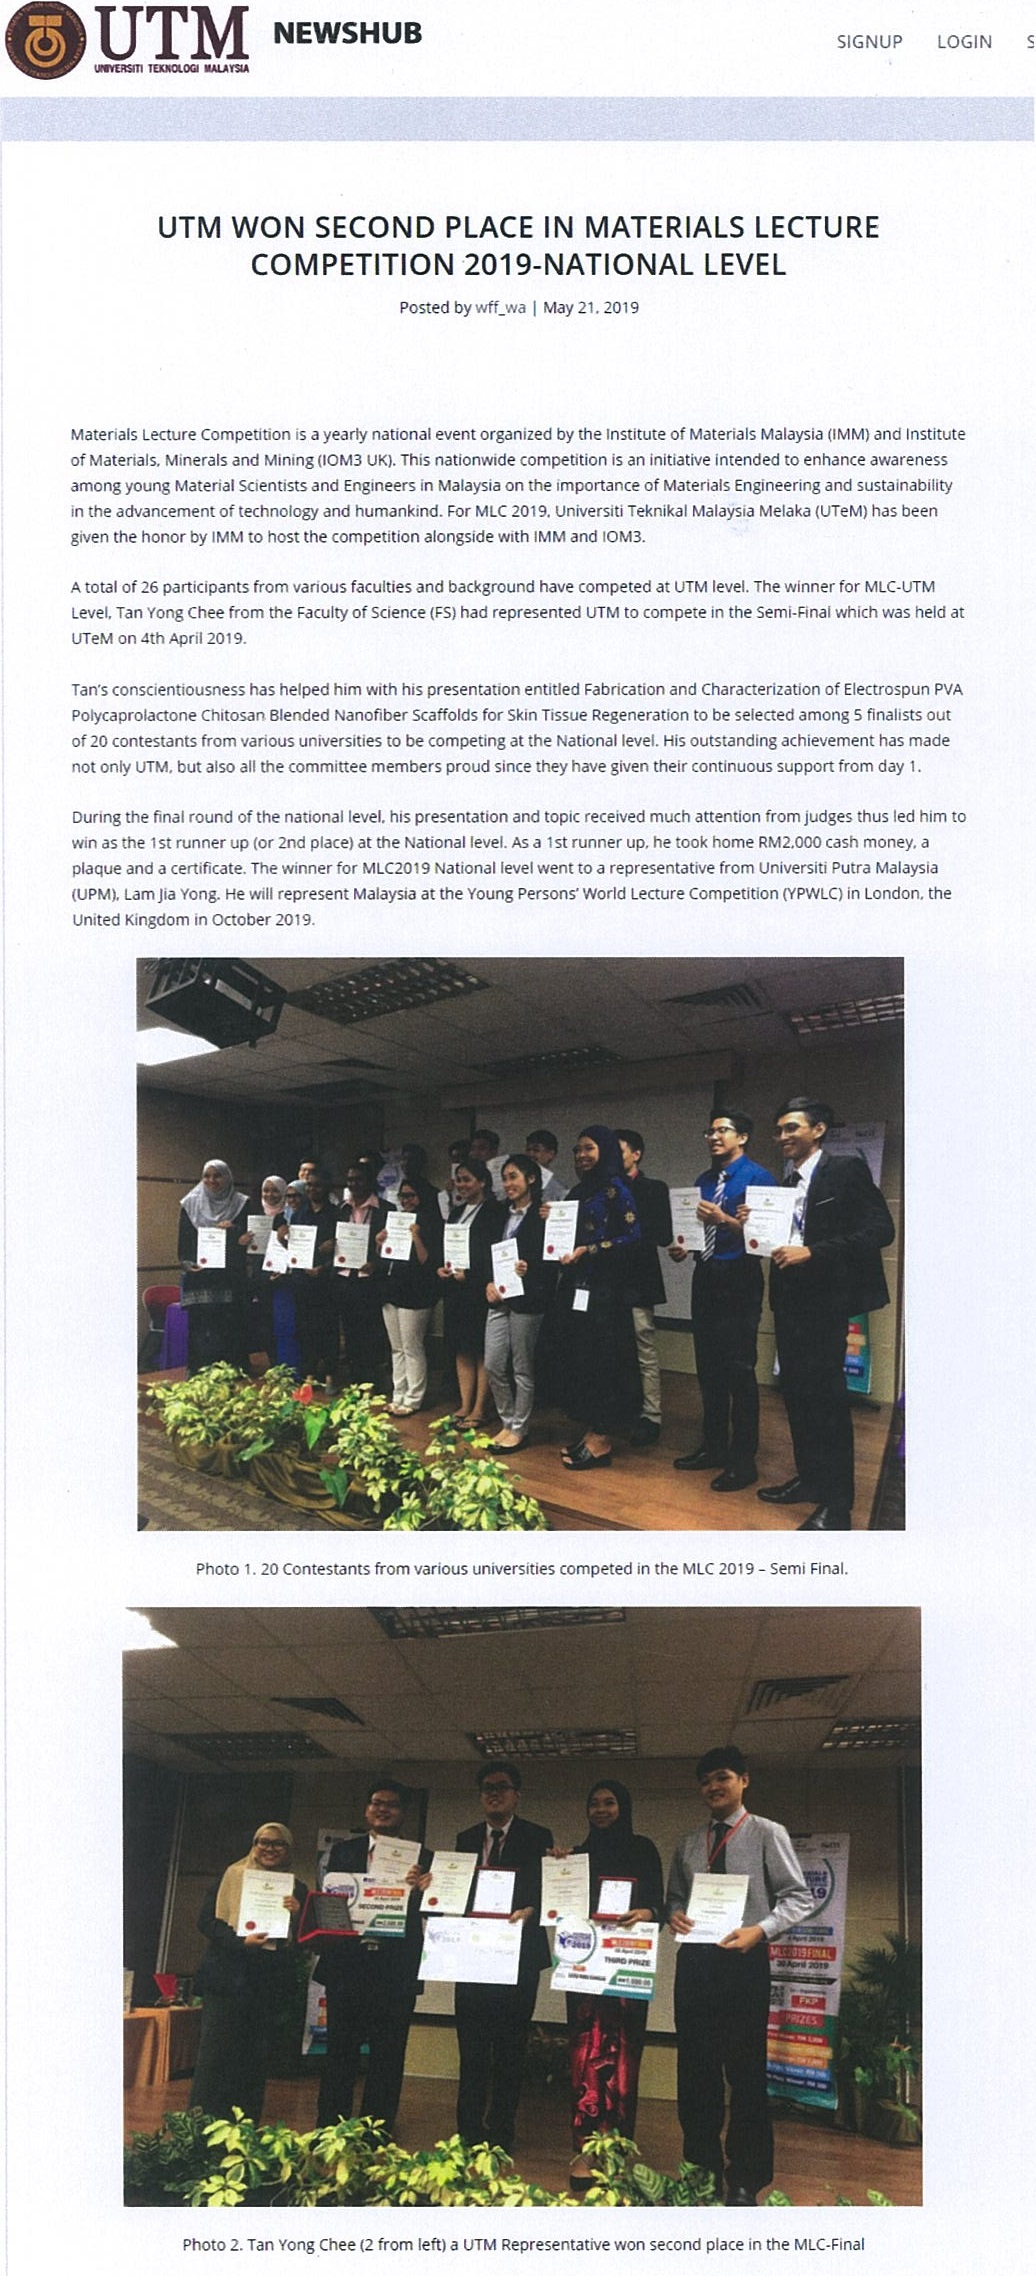 UTM won second place in materials lecture competition 2019-national level